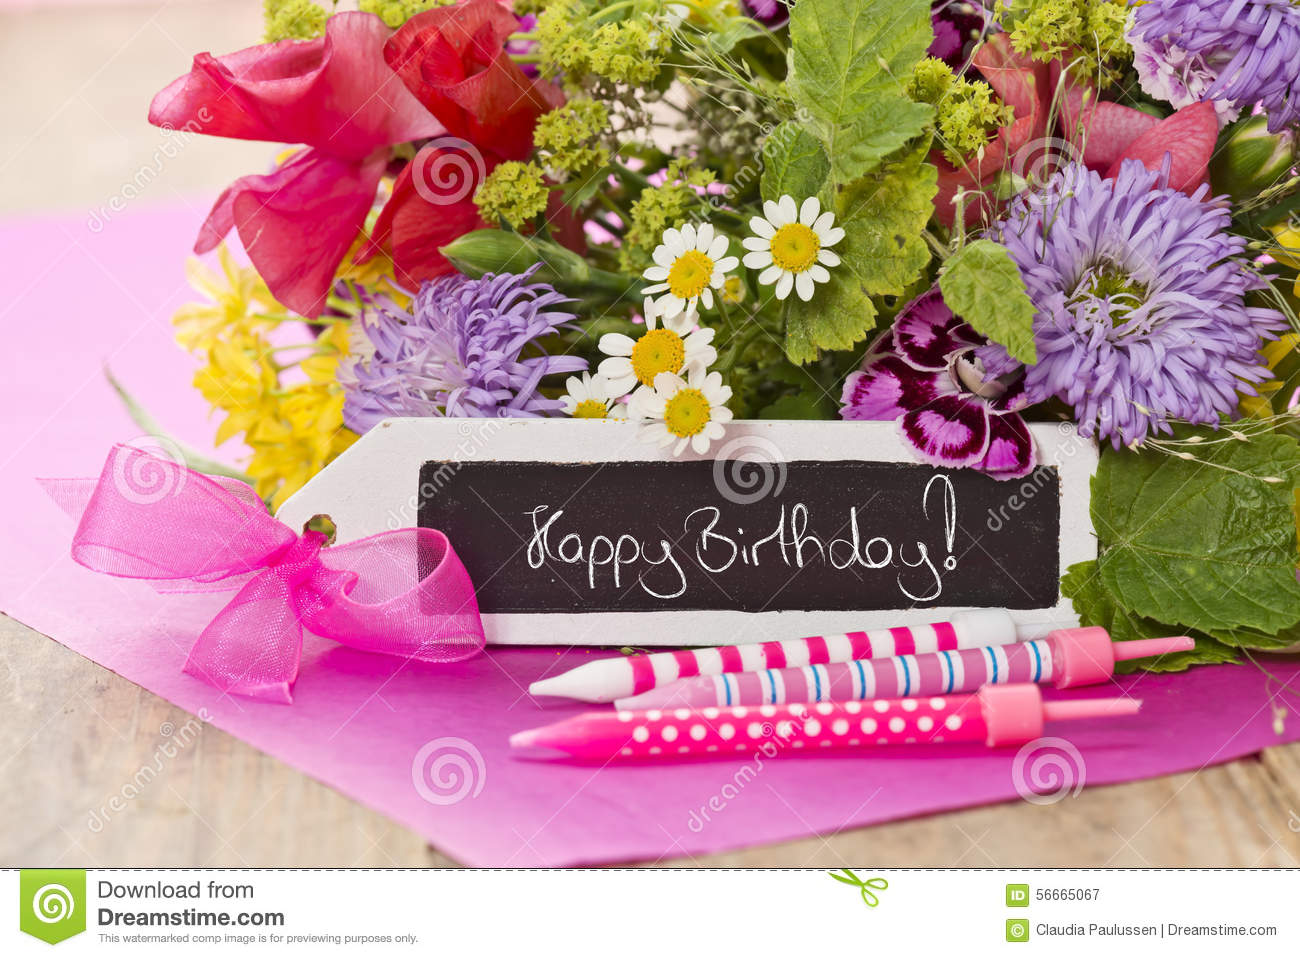 Happy birthday flower bouquets fda happy birthday purple palette bouquet of flowers izmirmasajfo Image collections